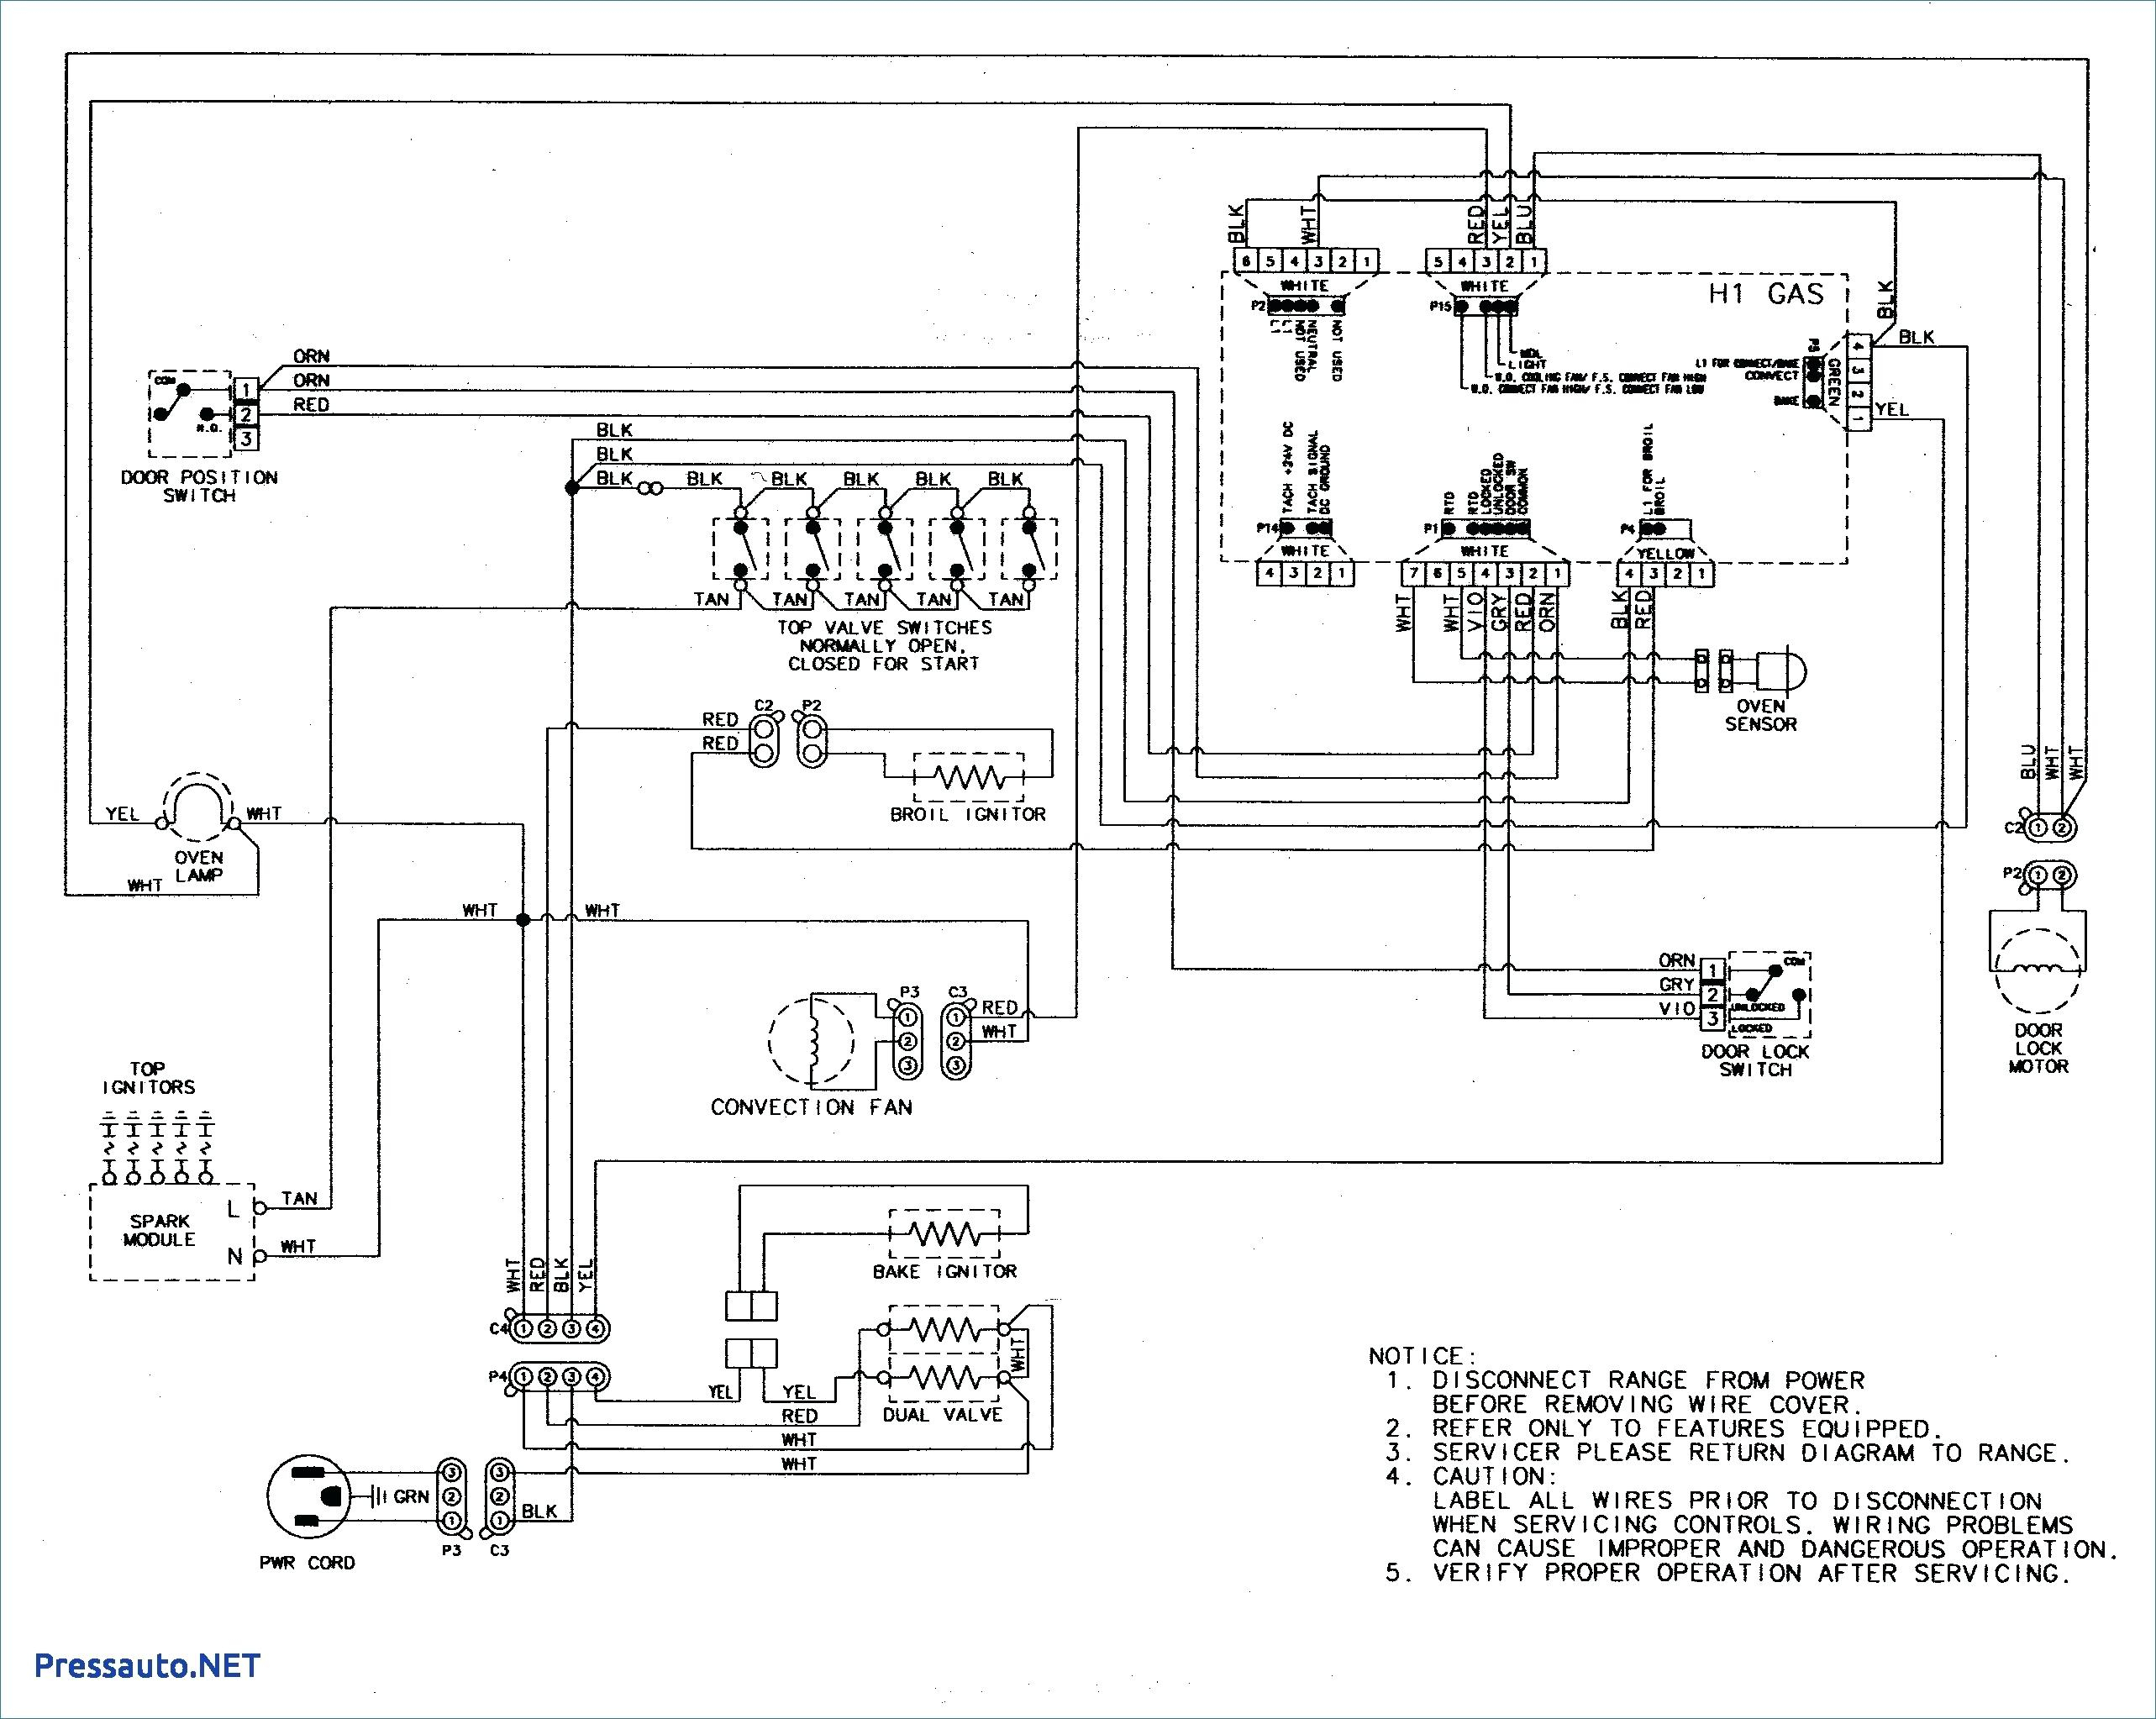 ge dryer start switch wiring diagram Collection-Ge Electric Dryer Wiring Diagram Electrical Download Free Printable Heat Distinctions 19-p